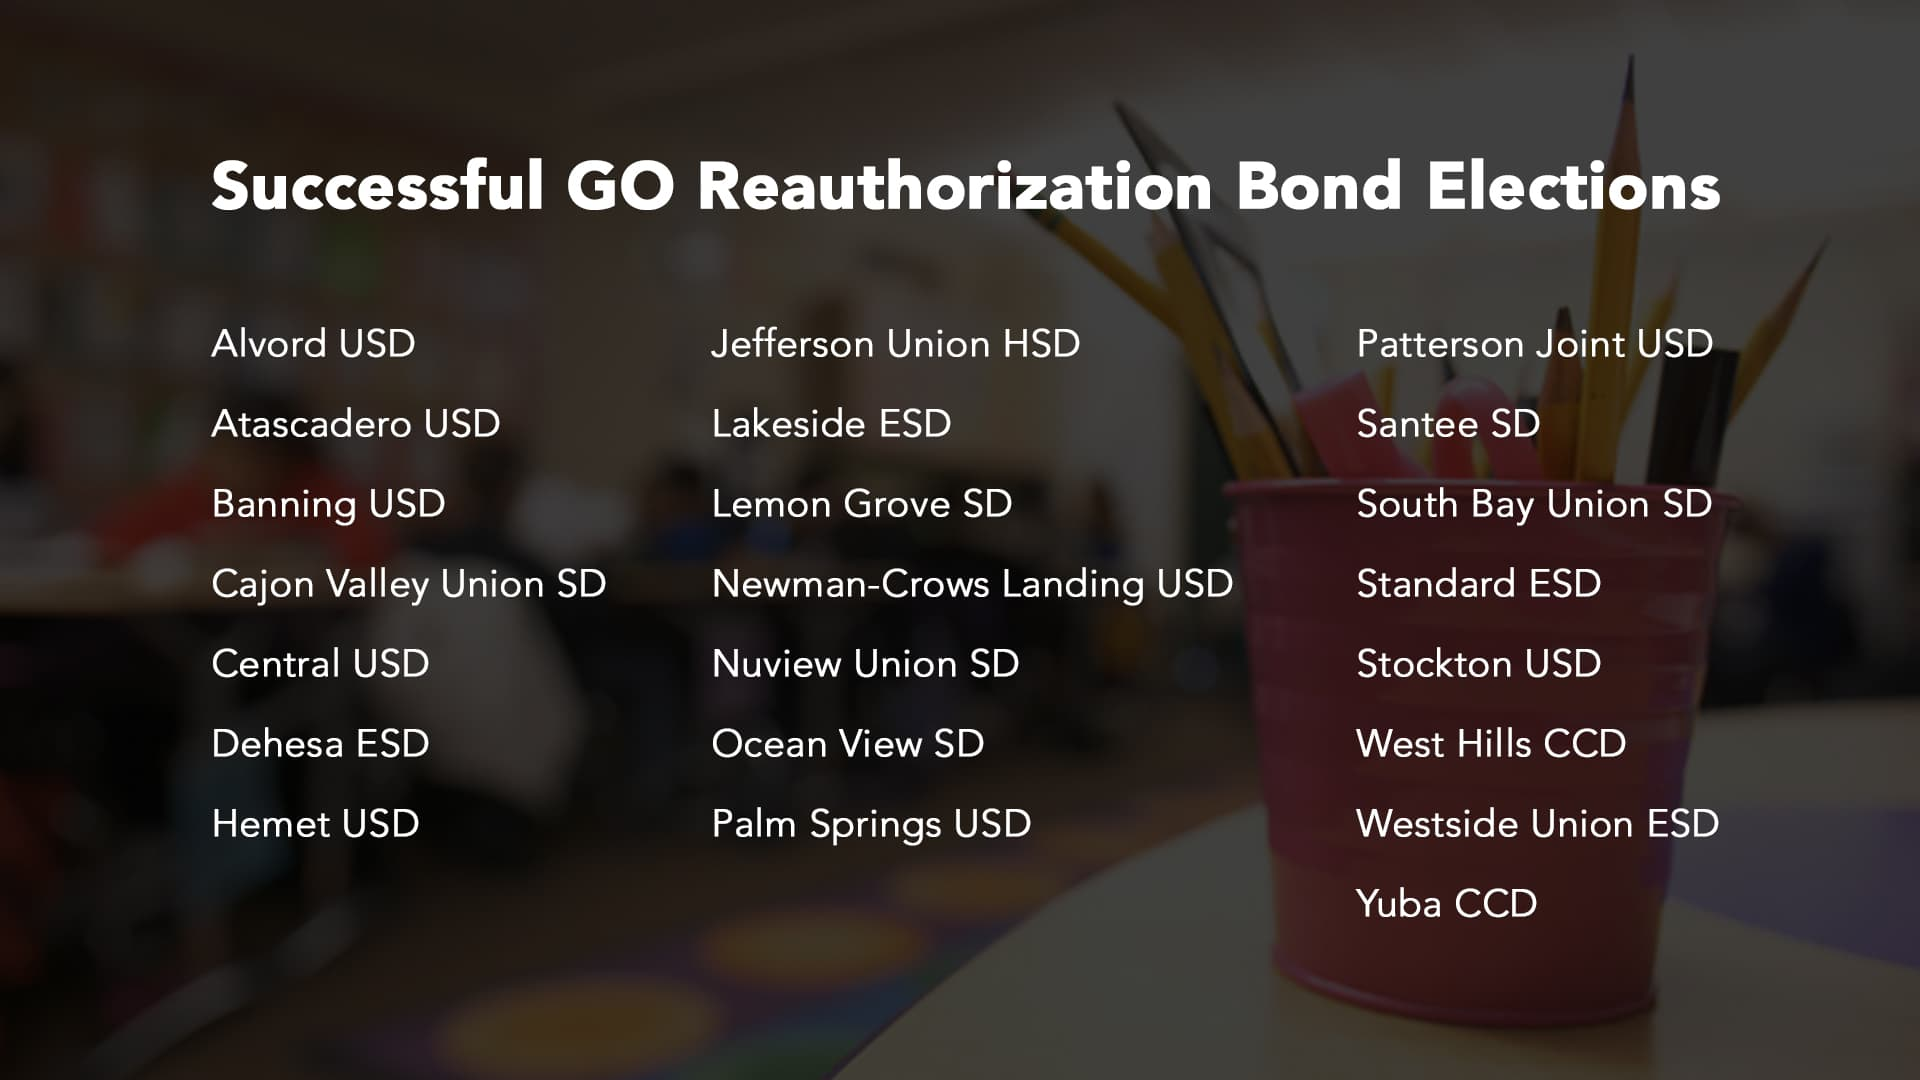 Successful GO Reauthorization Bond Elections